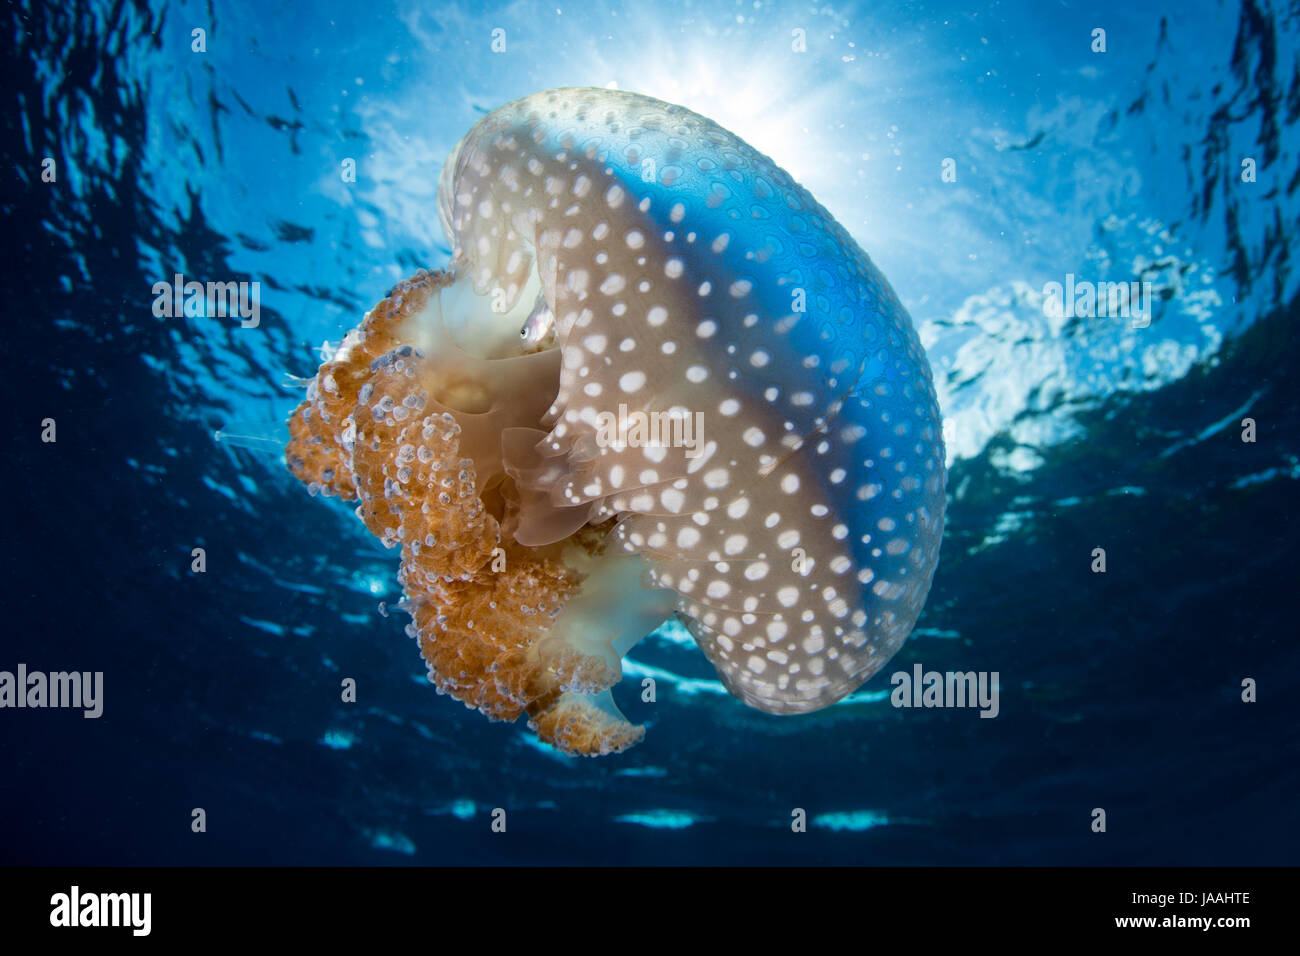 Sunlight silhouettes a beautiful jellyfish, Thysanostoma sp., as it drifts through tropical waters in Indonesia. - Stock Image